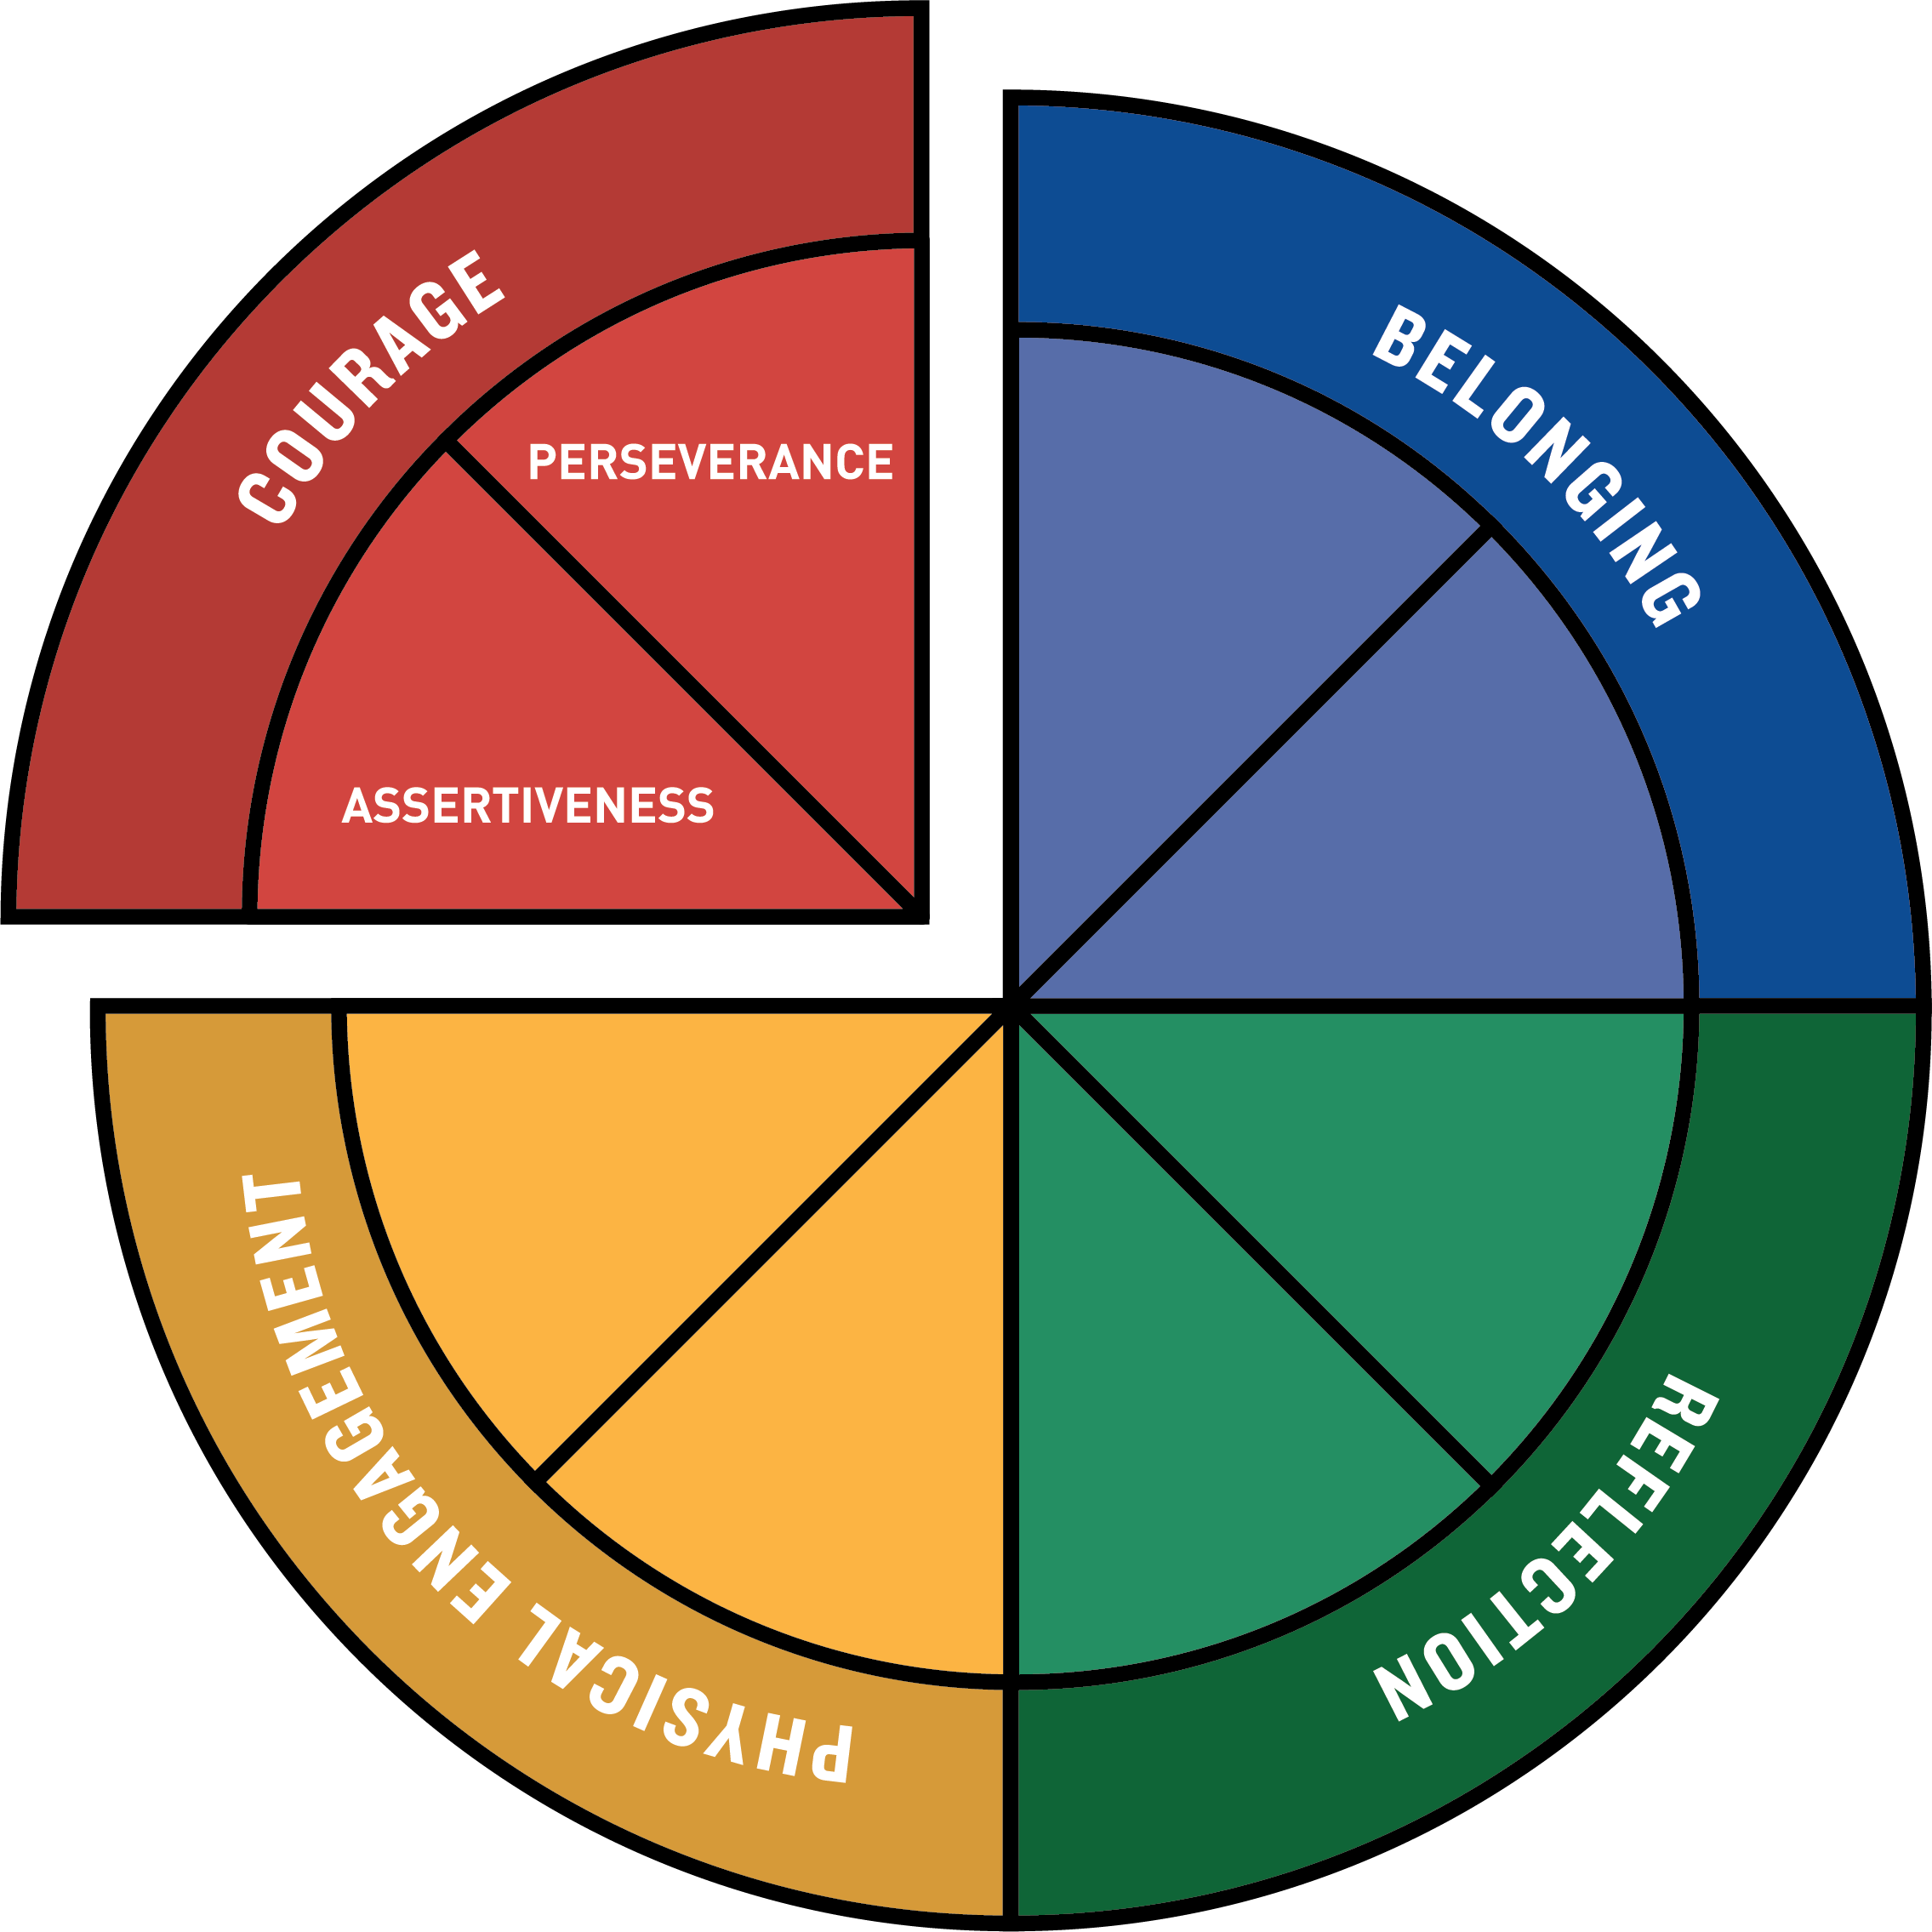 Domains of Thriving